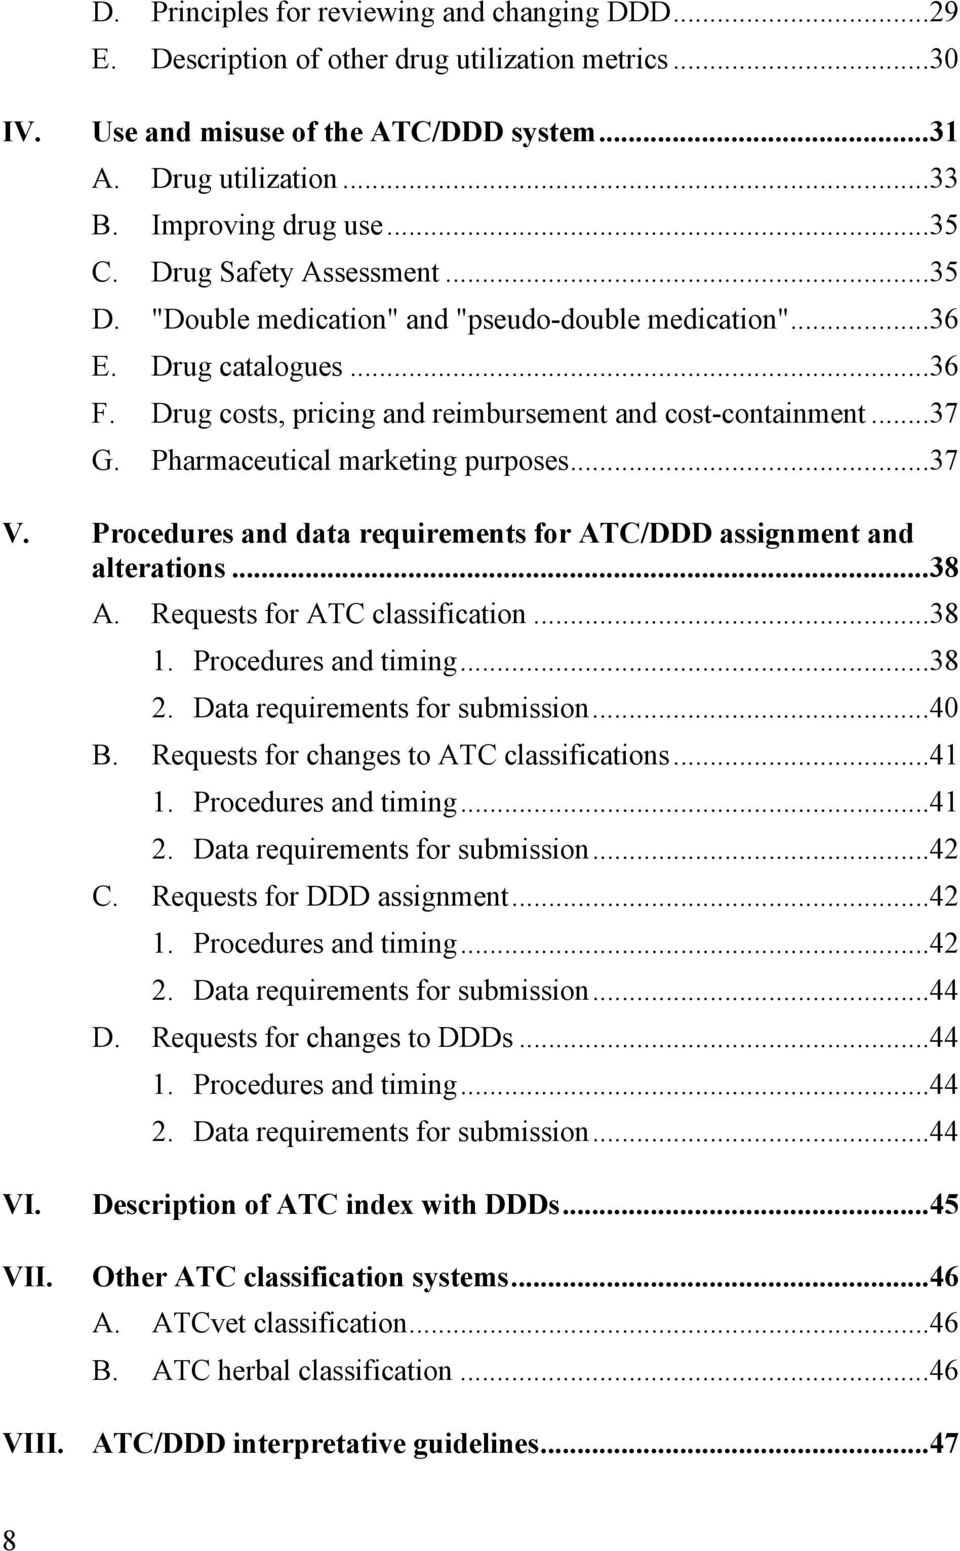 Drug costs, pricing and reimbursement and cost-containment... 37 G. Pharmaceutical marketing purposes... 37 V. Procedures and data requirements for ATC/DDD assignment and alterations... 38 A.